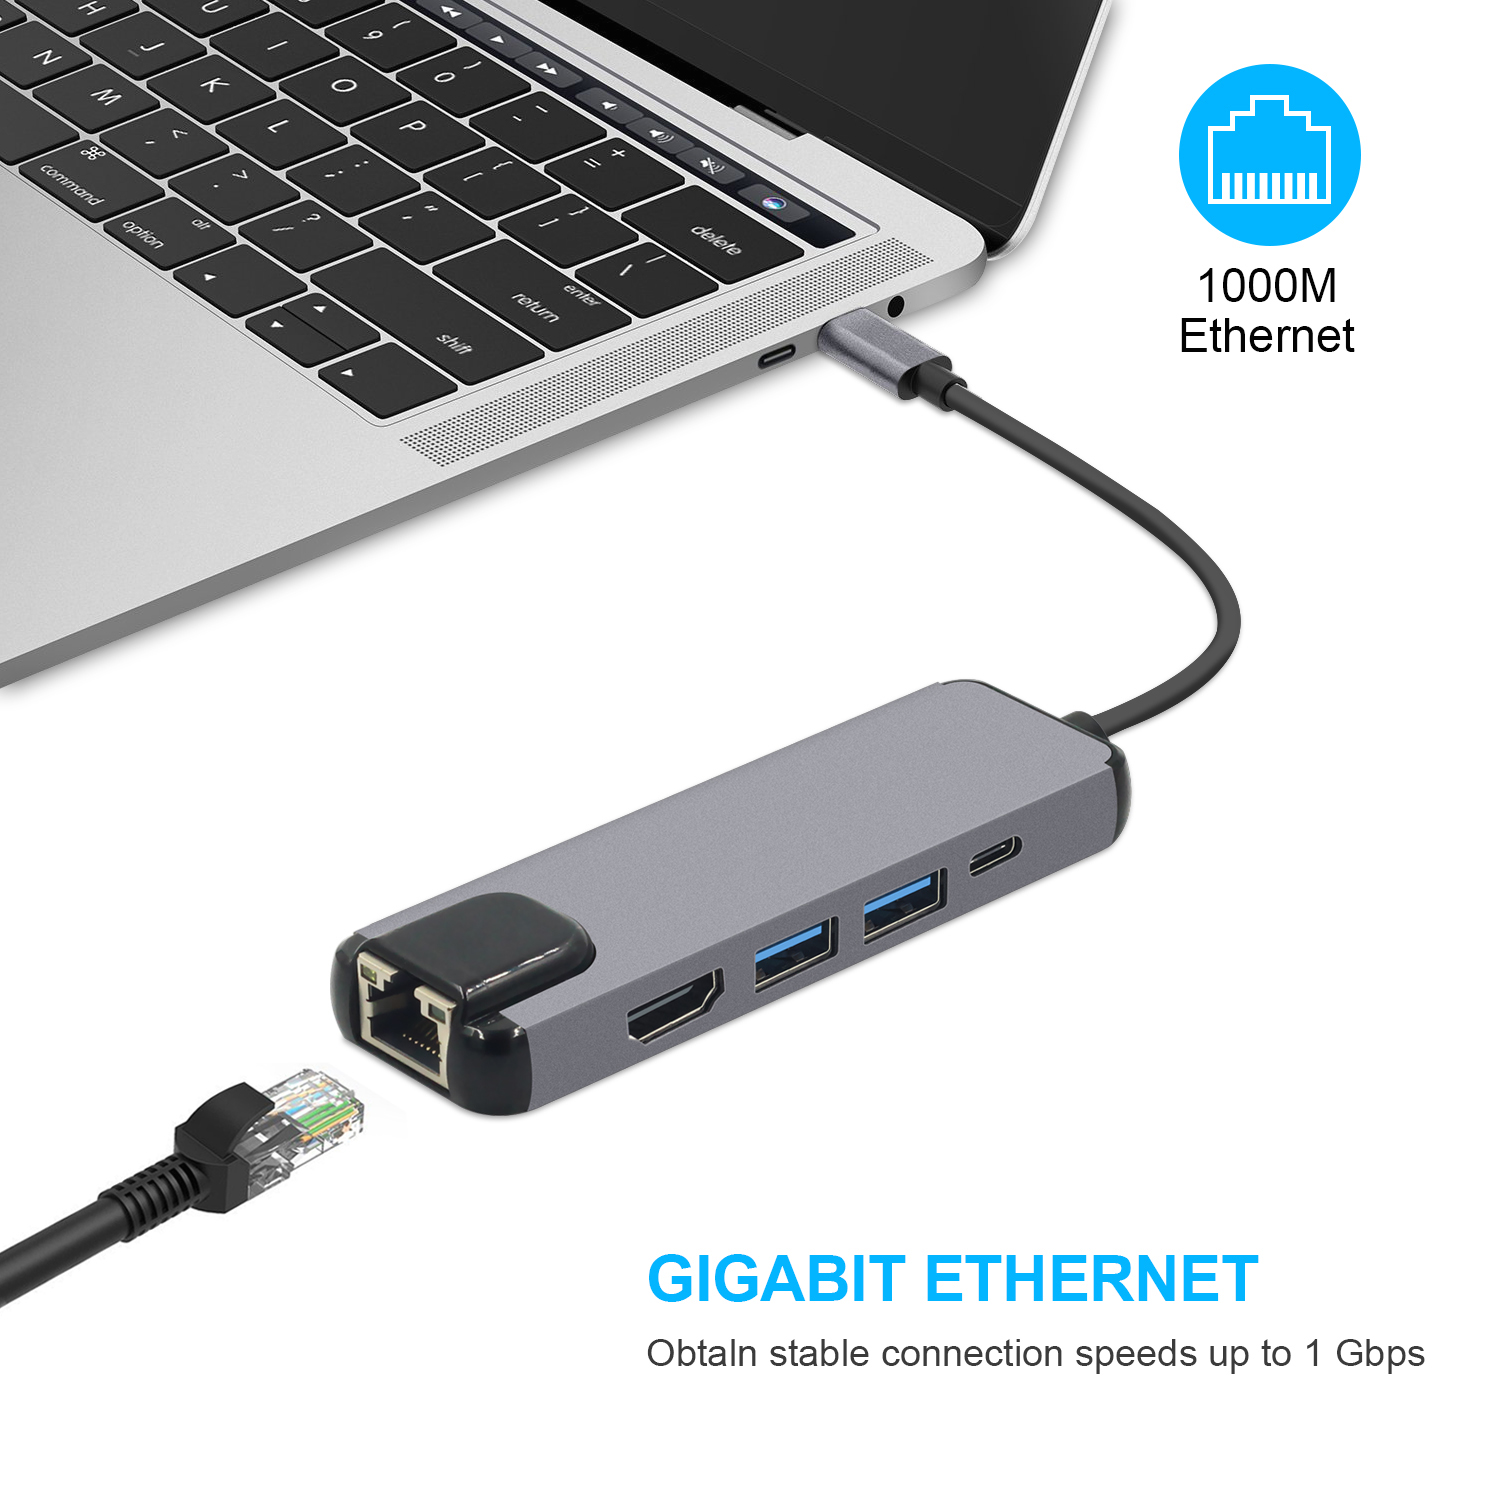 цена 5 in 1 USB C Hub to HDMI Gigabit Ethernet Rj45 Lan Adapter for Macbook Pro iPad Pro 11 12.9 2018 Thunderbolt 3 Type c Hub